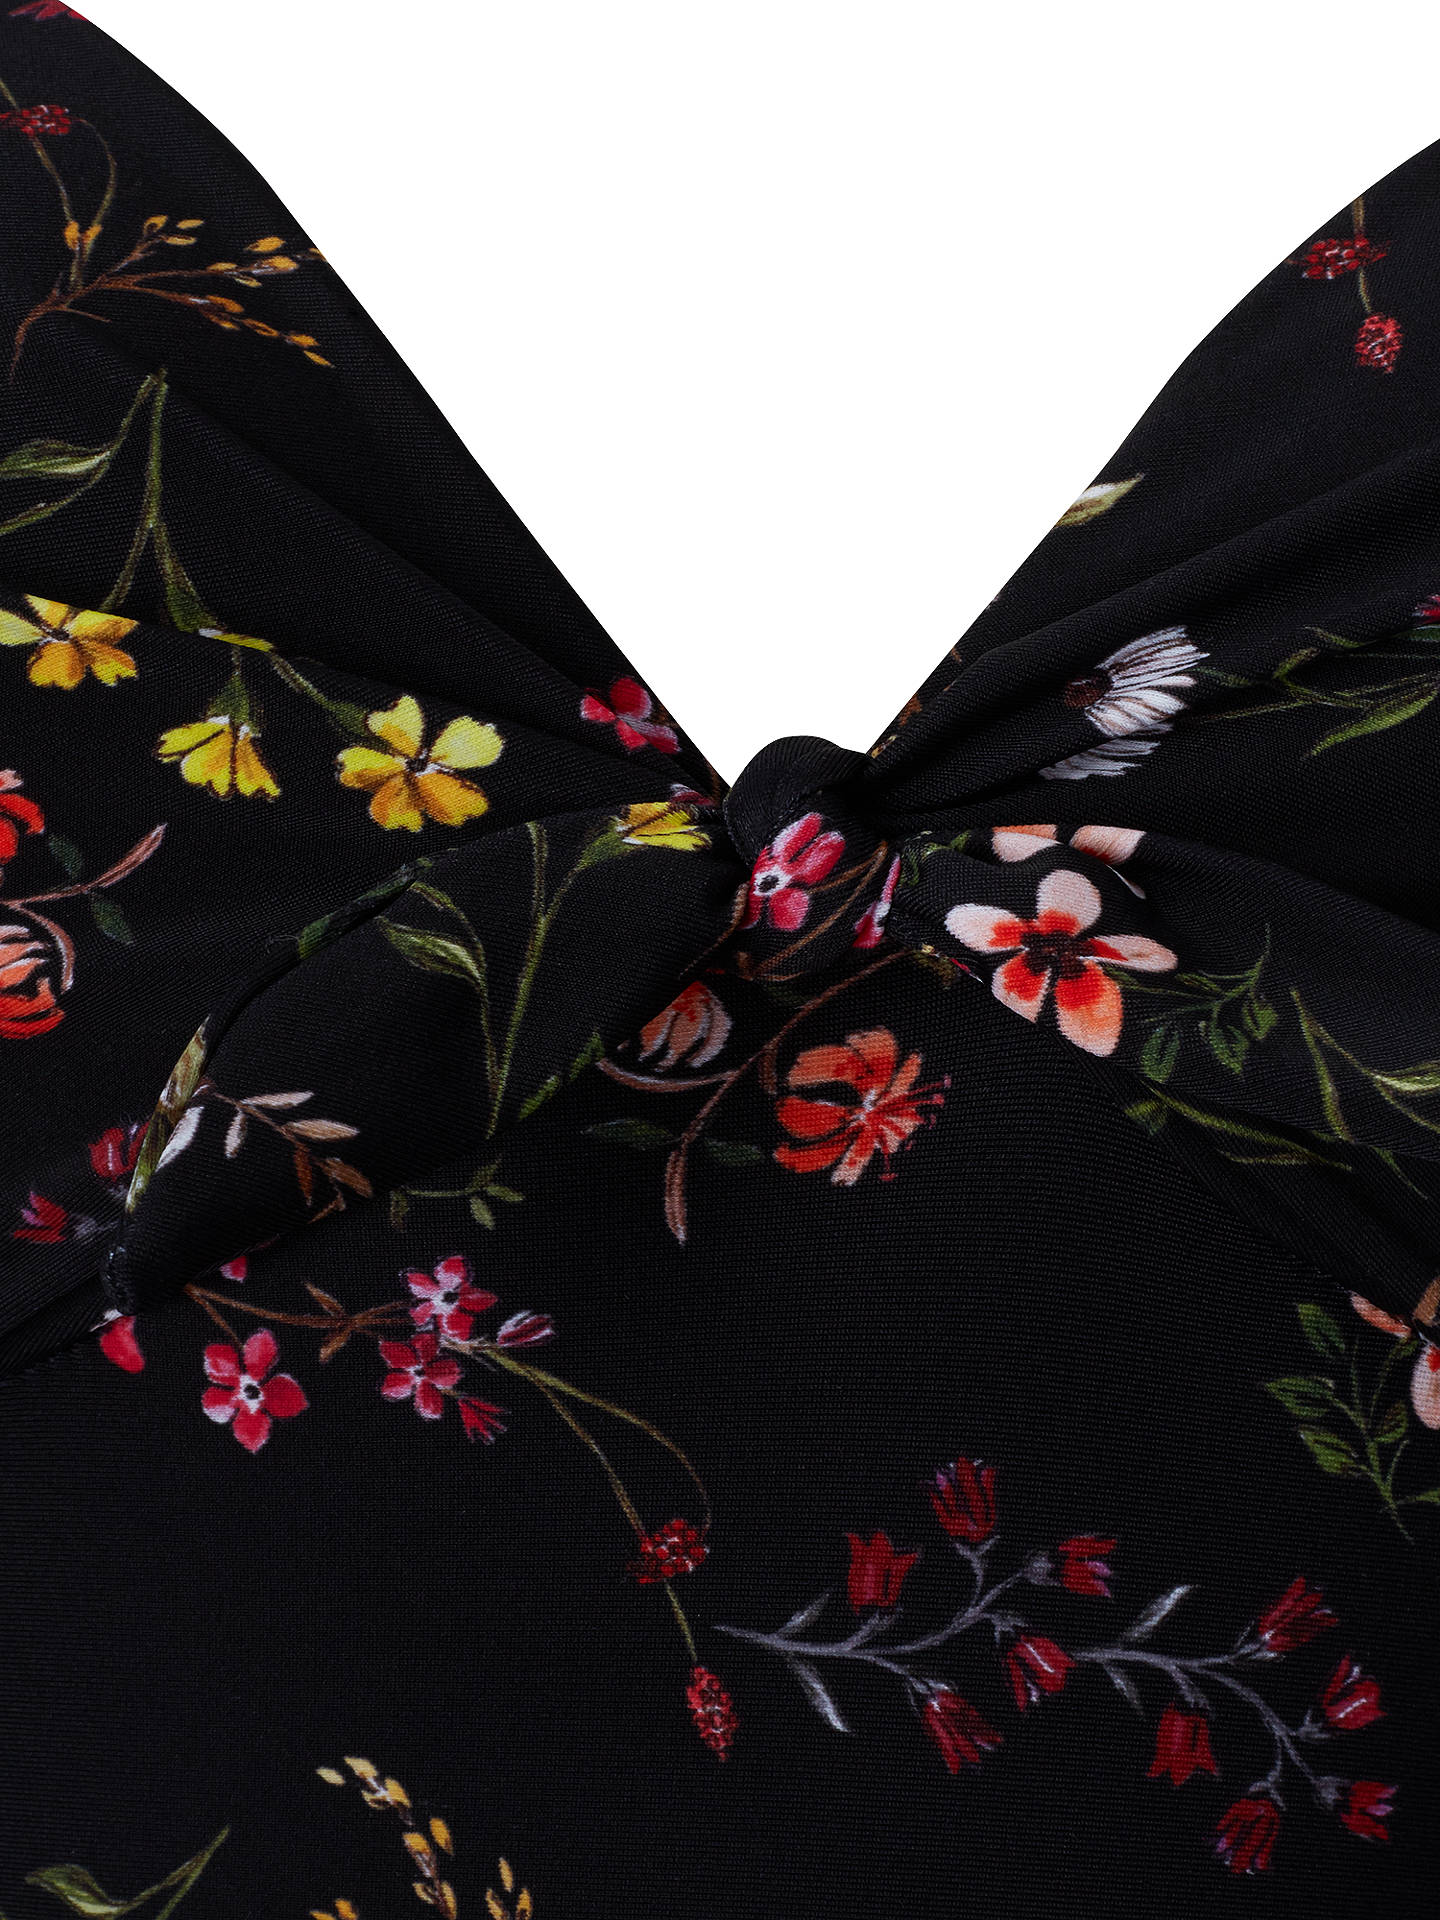 BuyPhase Eight Ditsy Floral Print Swimsuit, Black/Multi, 8 Online at johnlewis.com